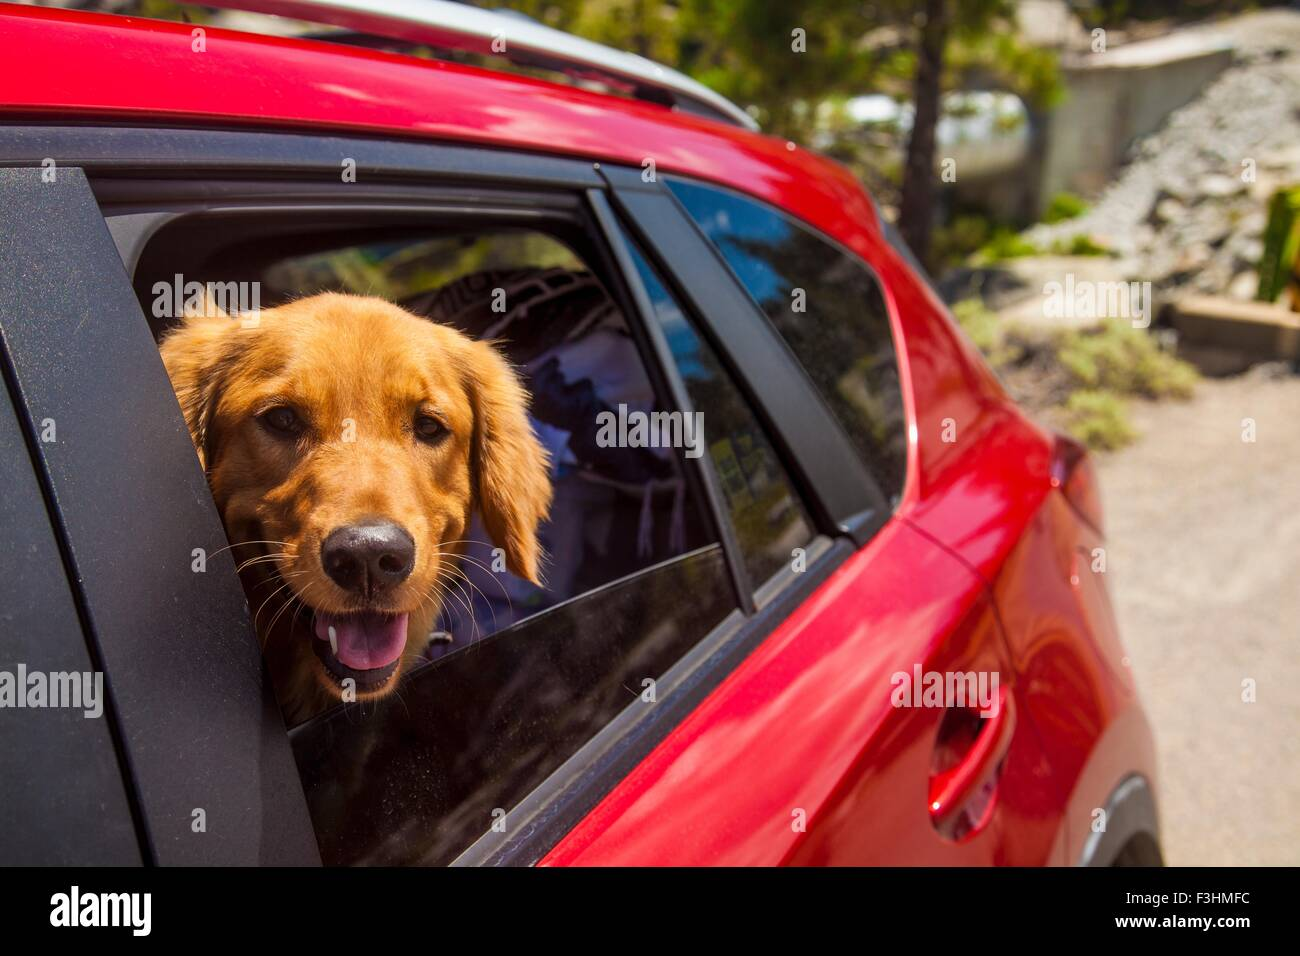 Dogs head poking out of  red car window - Stock Image